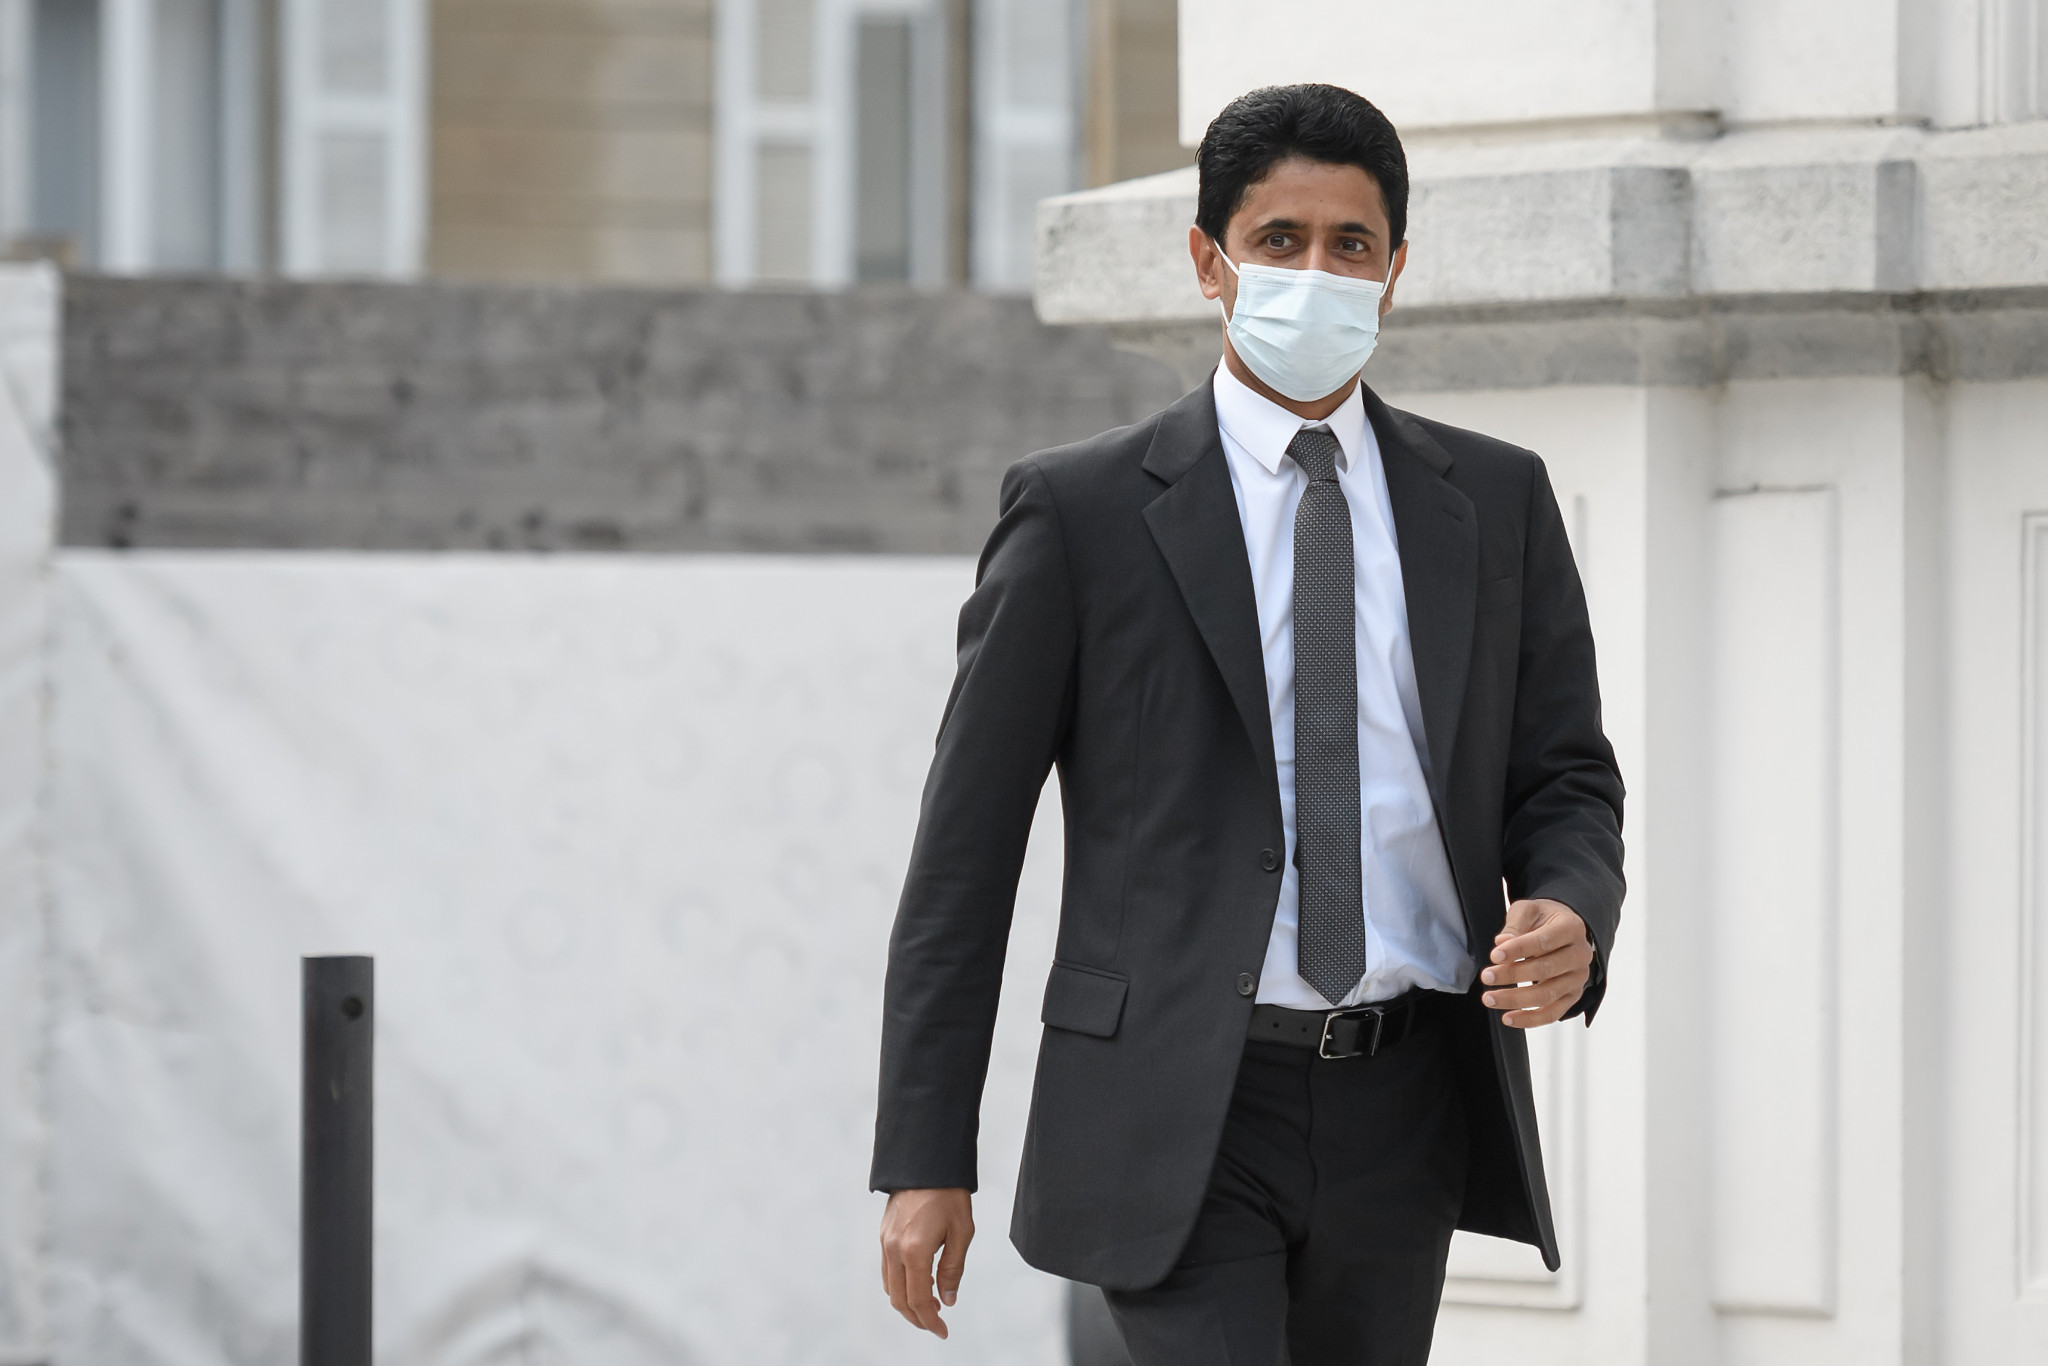 Nasser Al-Khelaifi said the charges against him had been